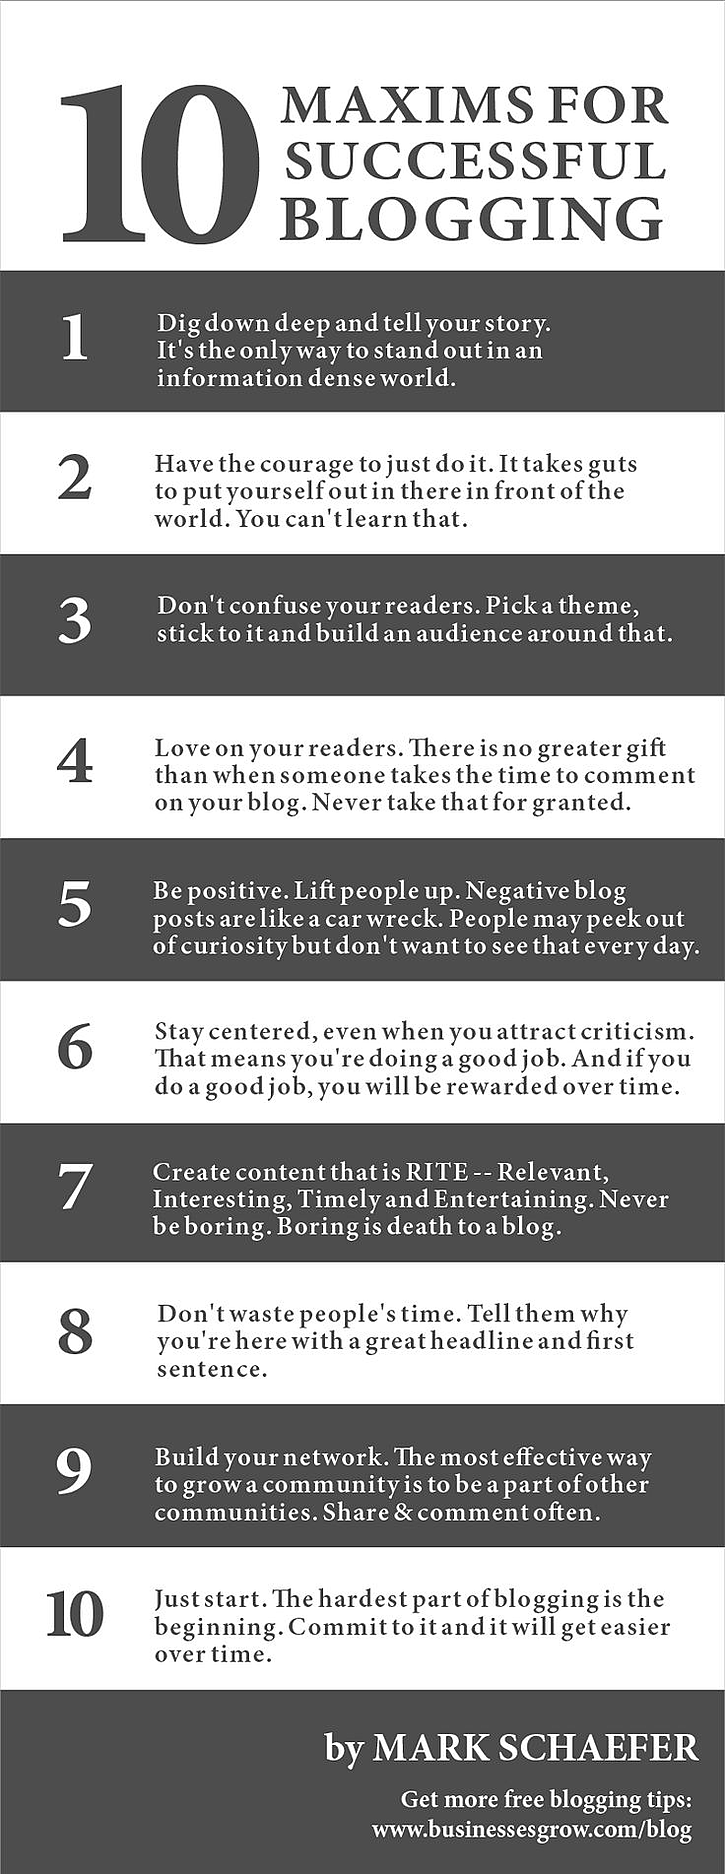 Best business blogs are improved by using the 10 maxims